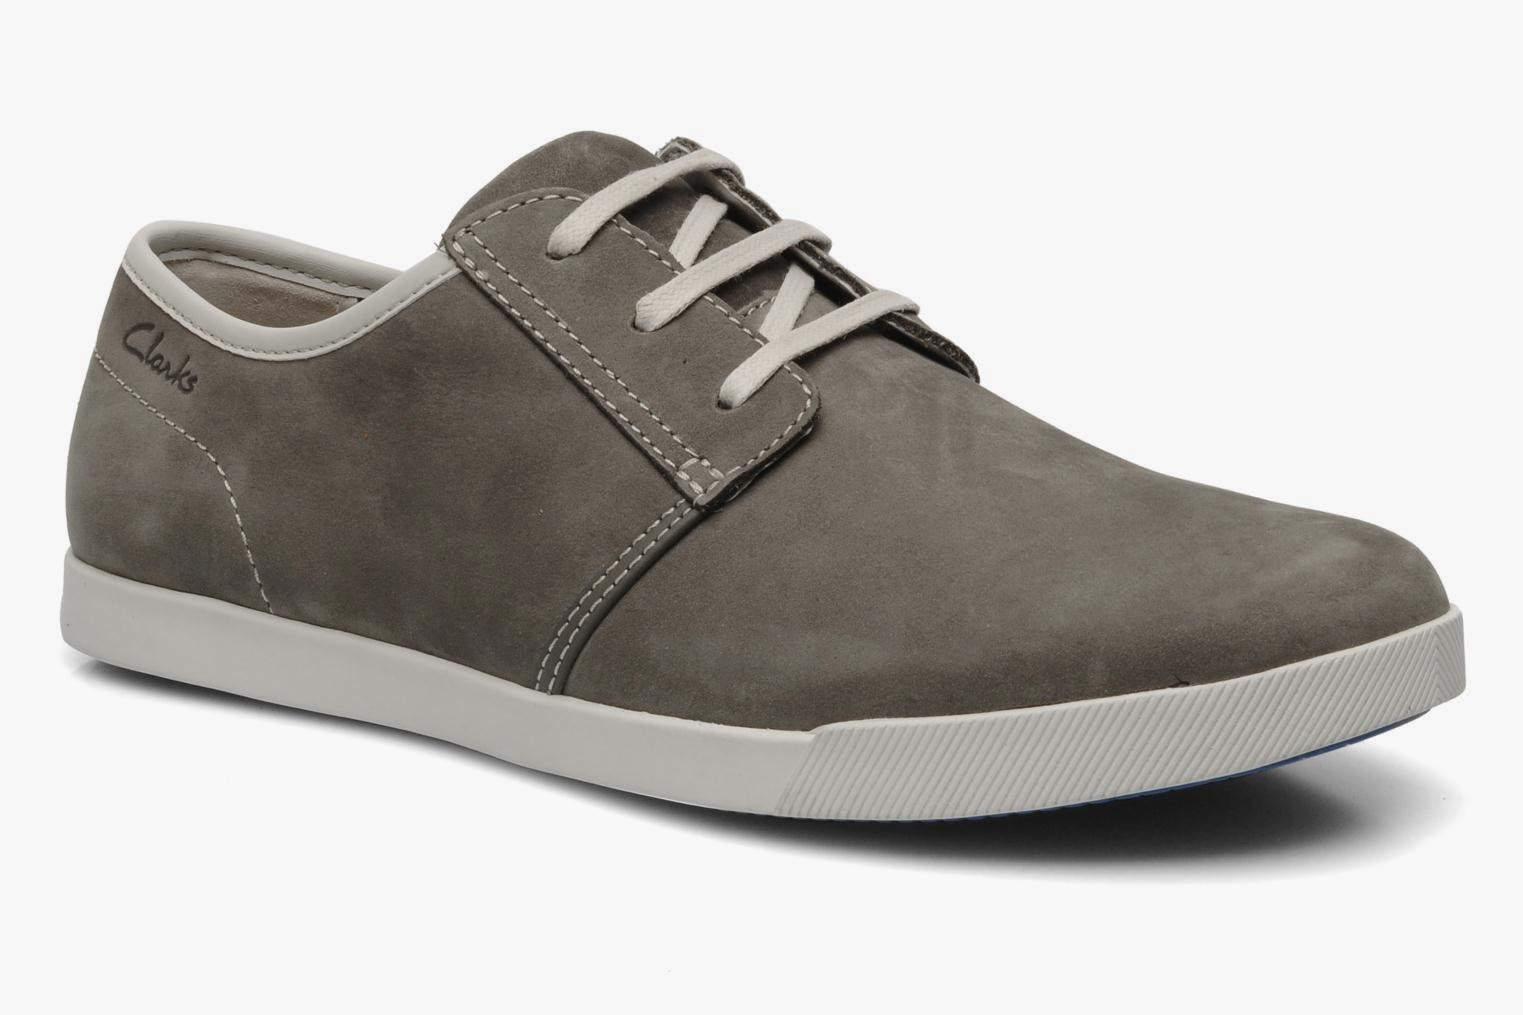 Clarks grey lace up shoes for men